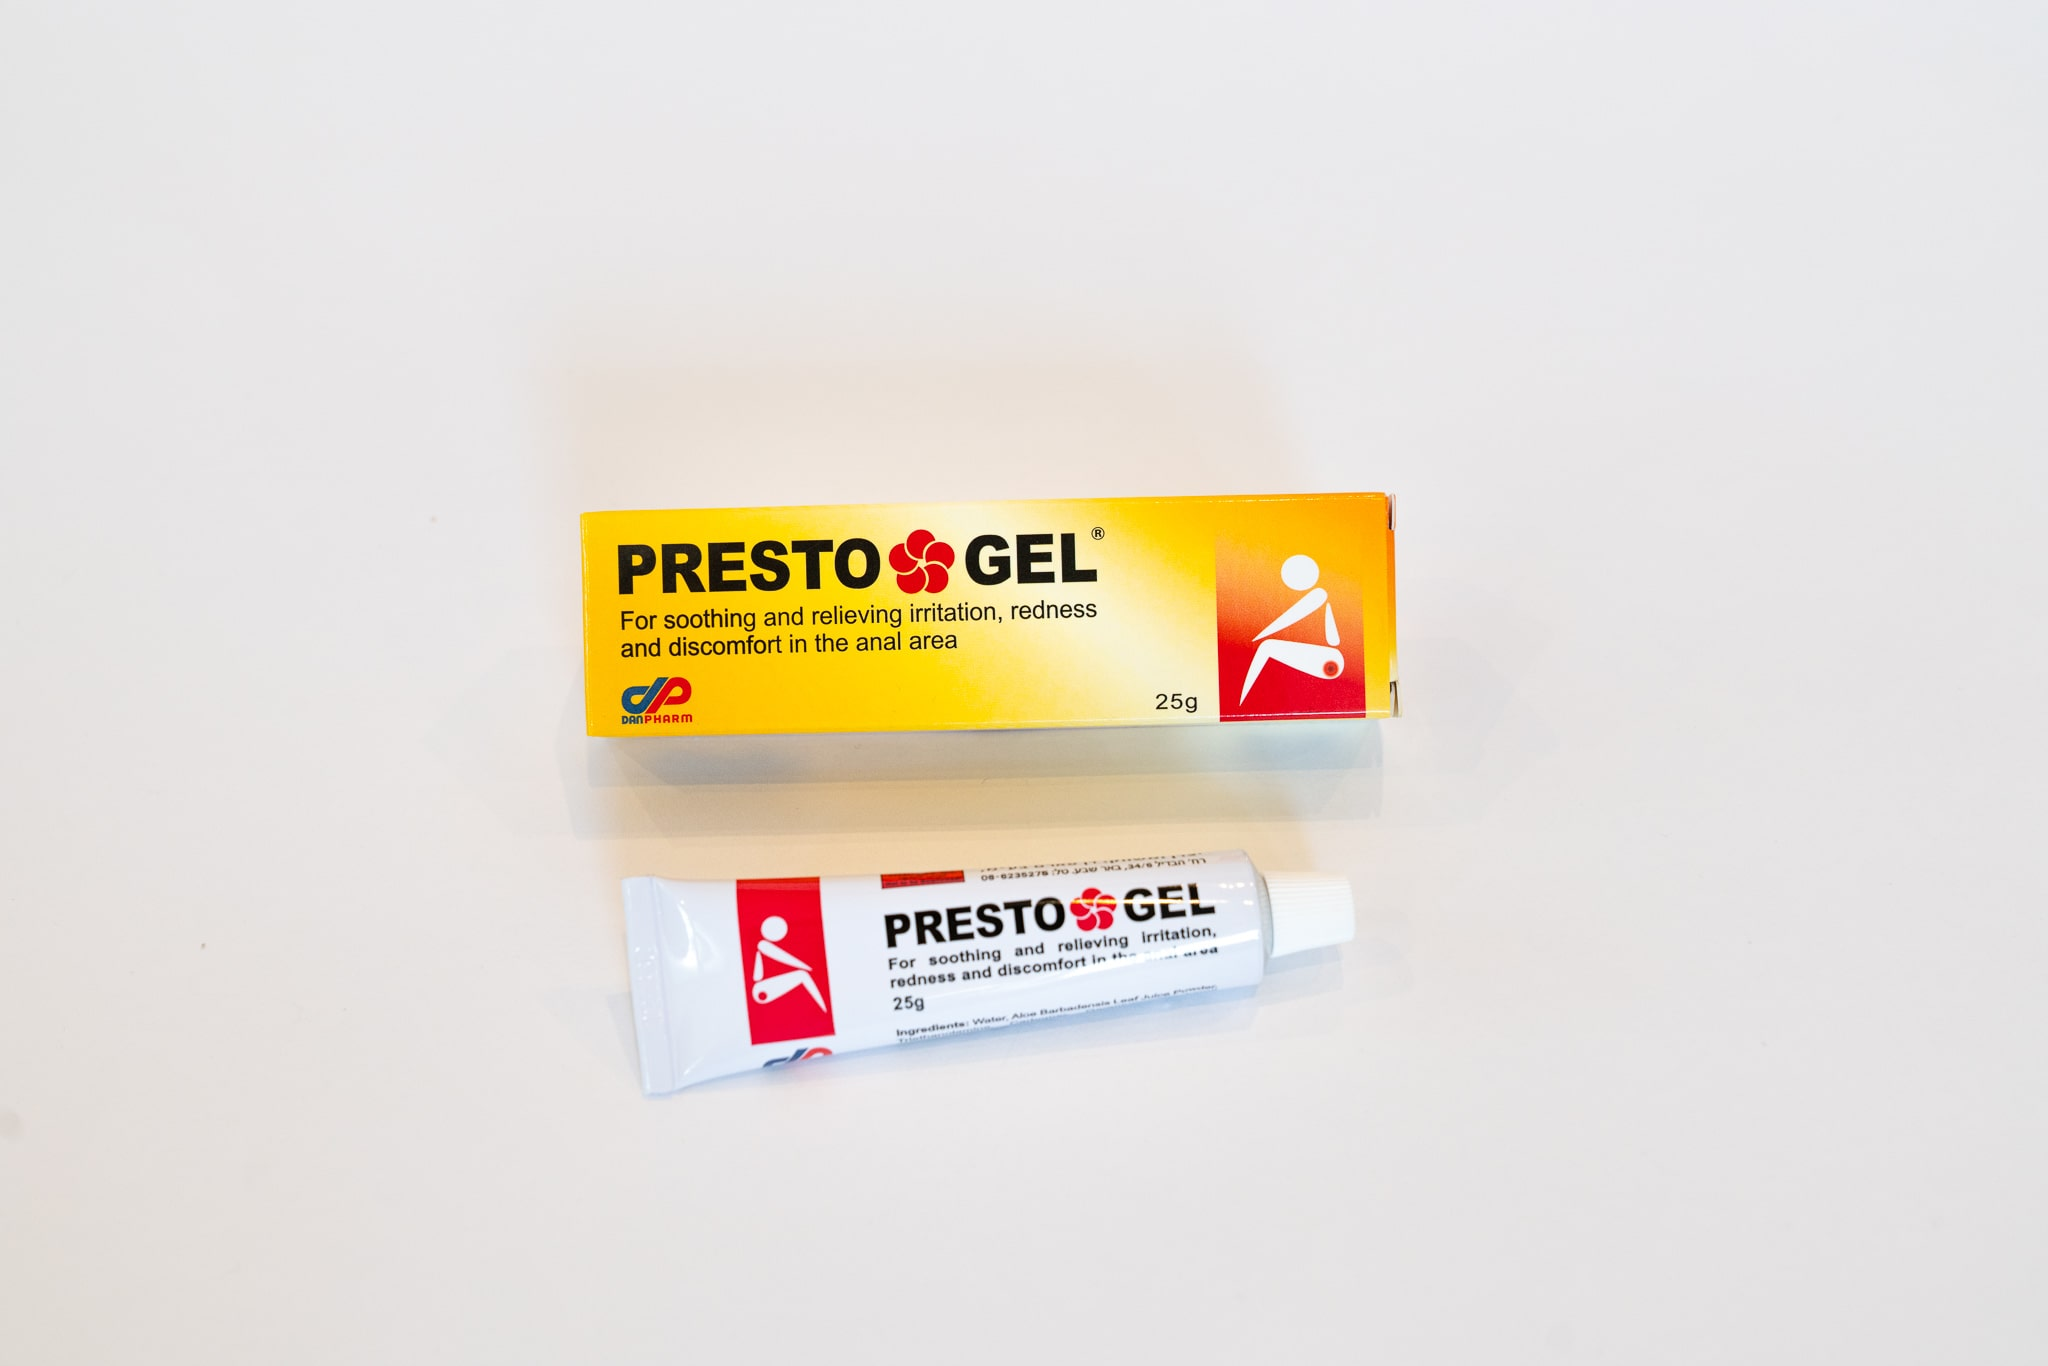 Presto Gel soothes and relieves irritation, redness and discomfort in the anal area